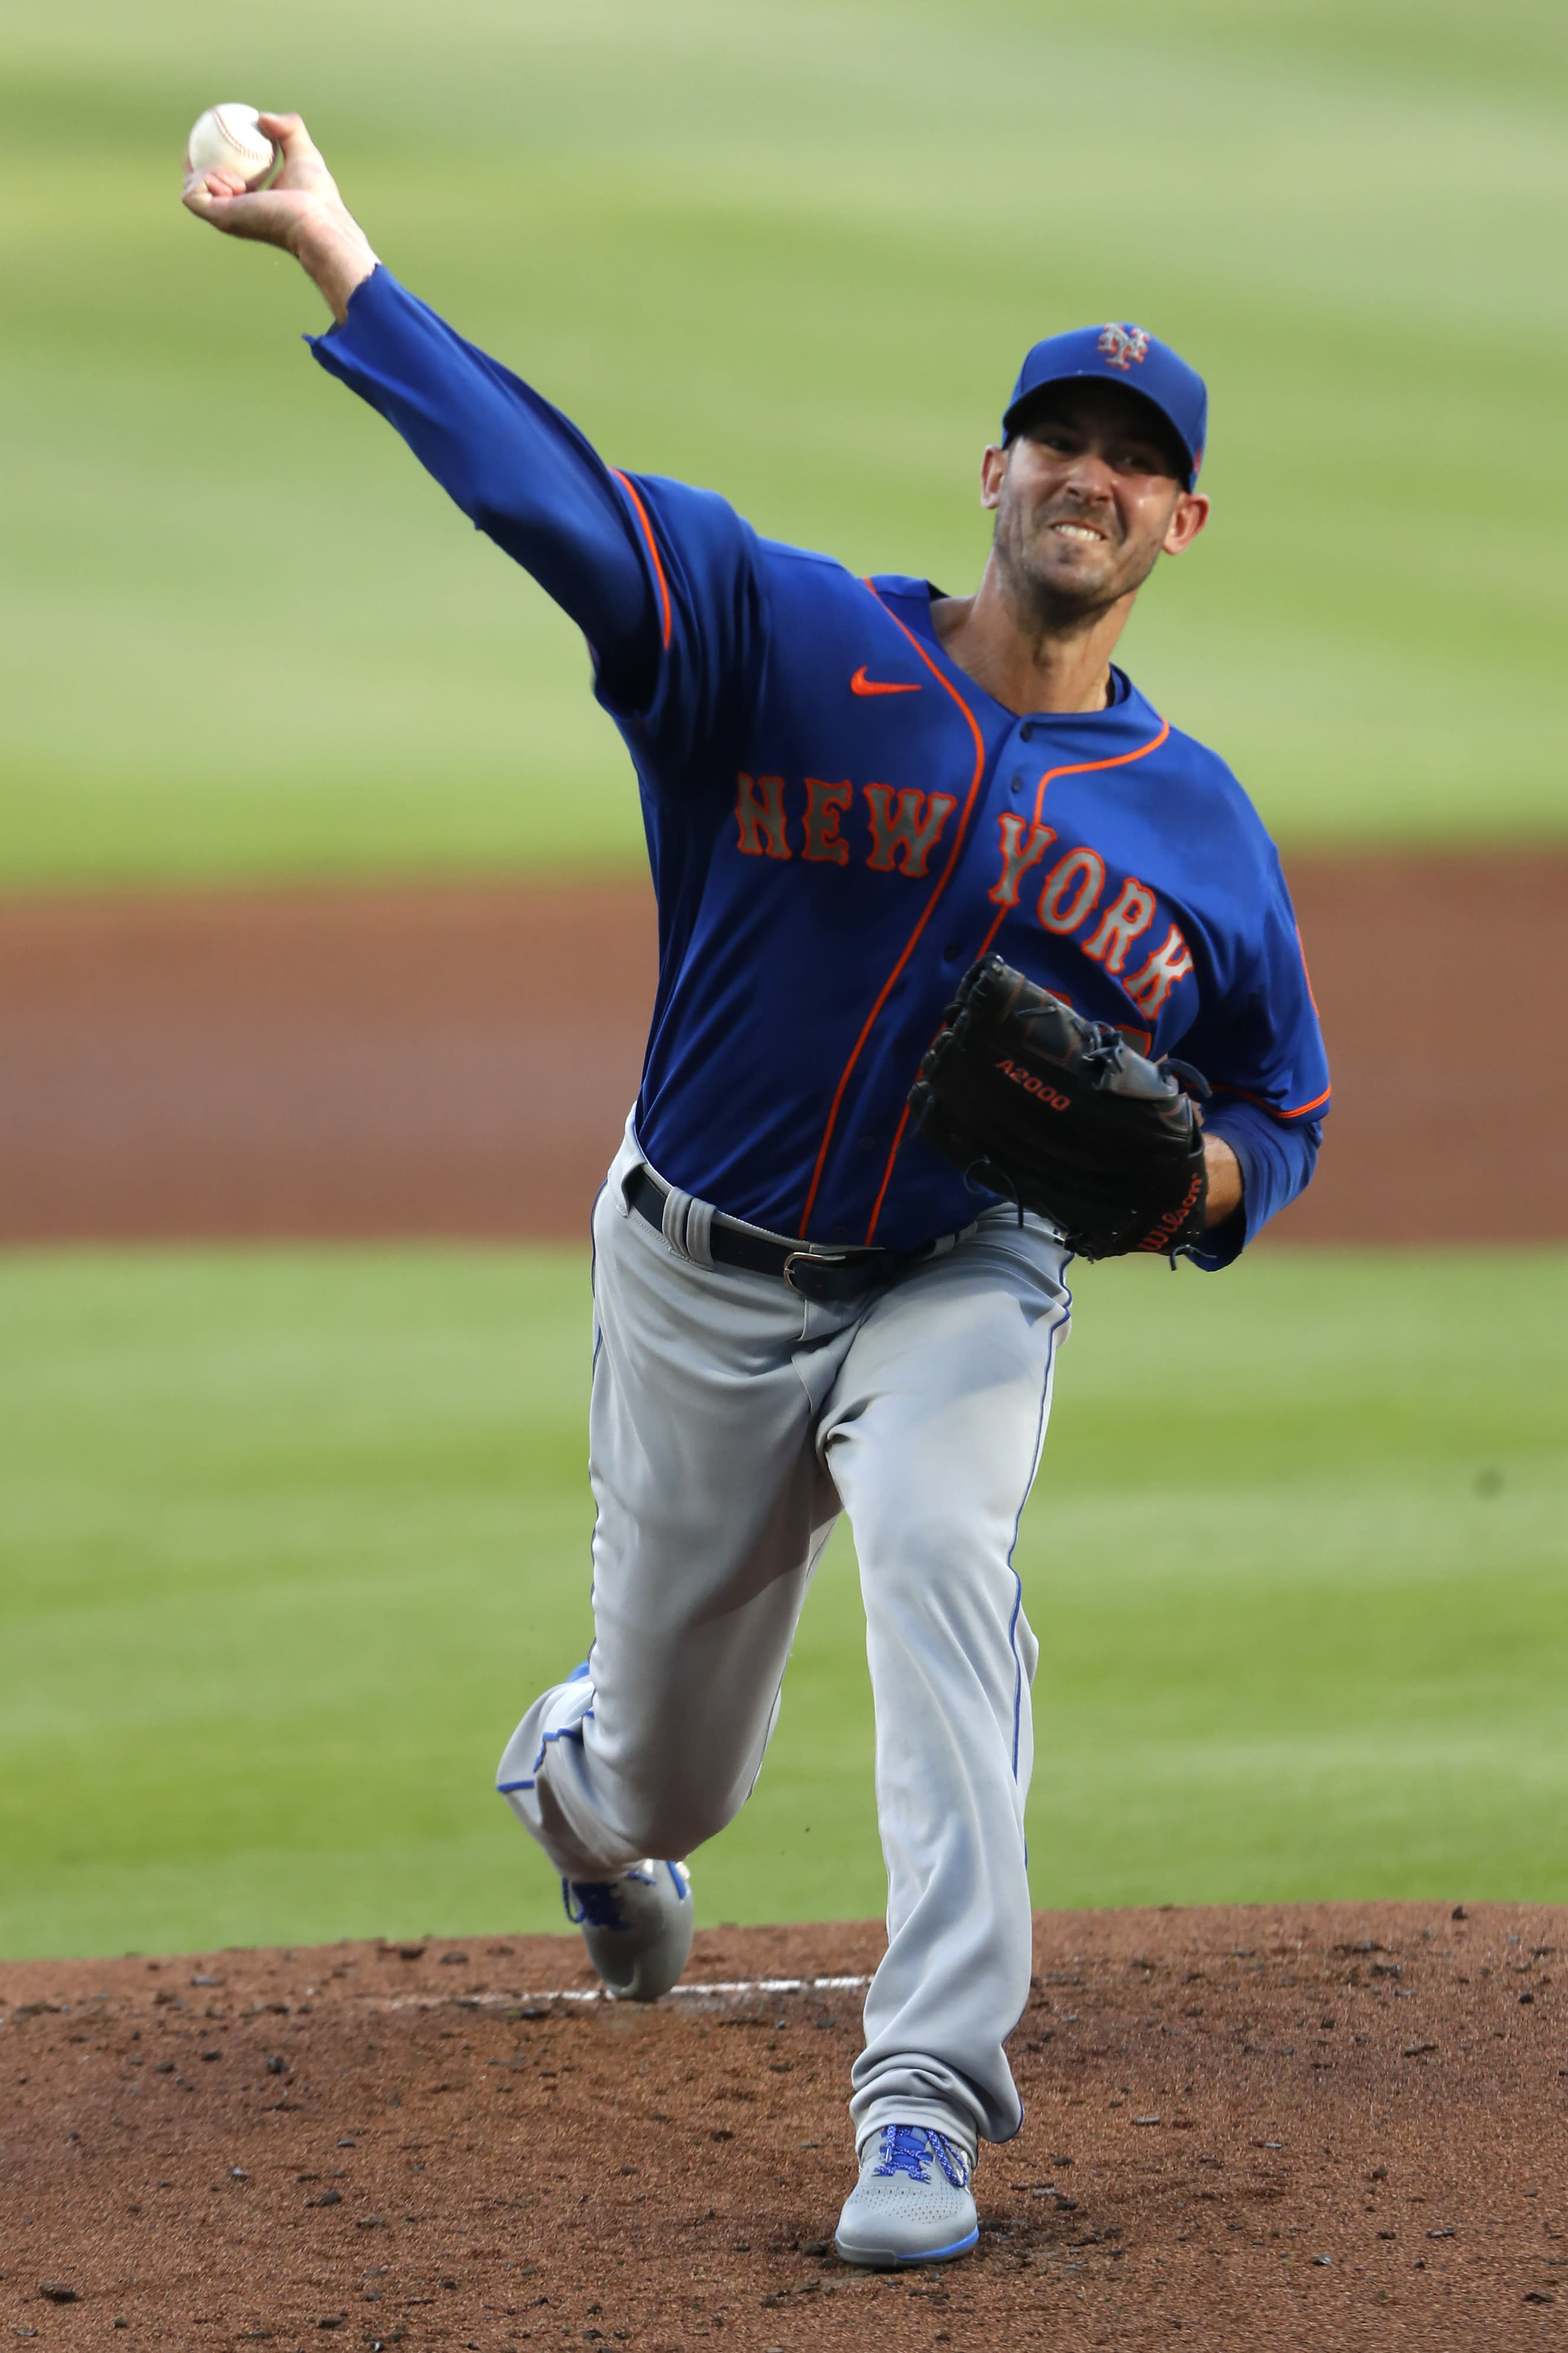 New York Mets starting pitcher Rick Porcello delivers in the first inning of a baseball game against the Atlanta Braves, Friday, July 31, 2020, in Atlanta. (AP Photo/John Bazemore)